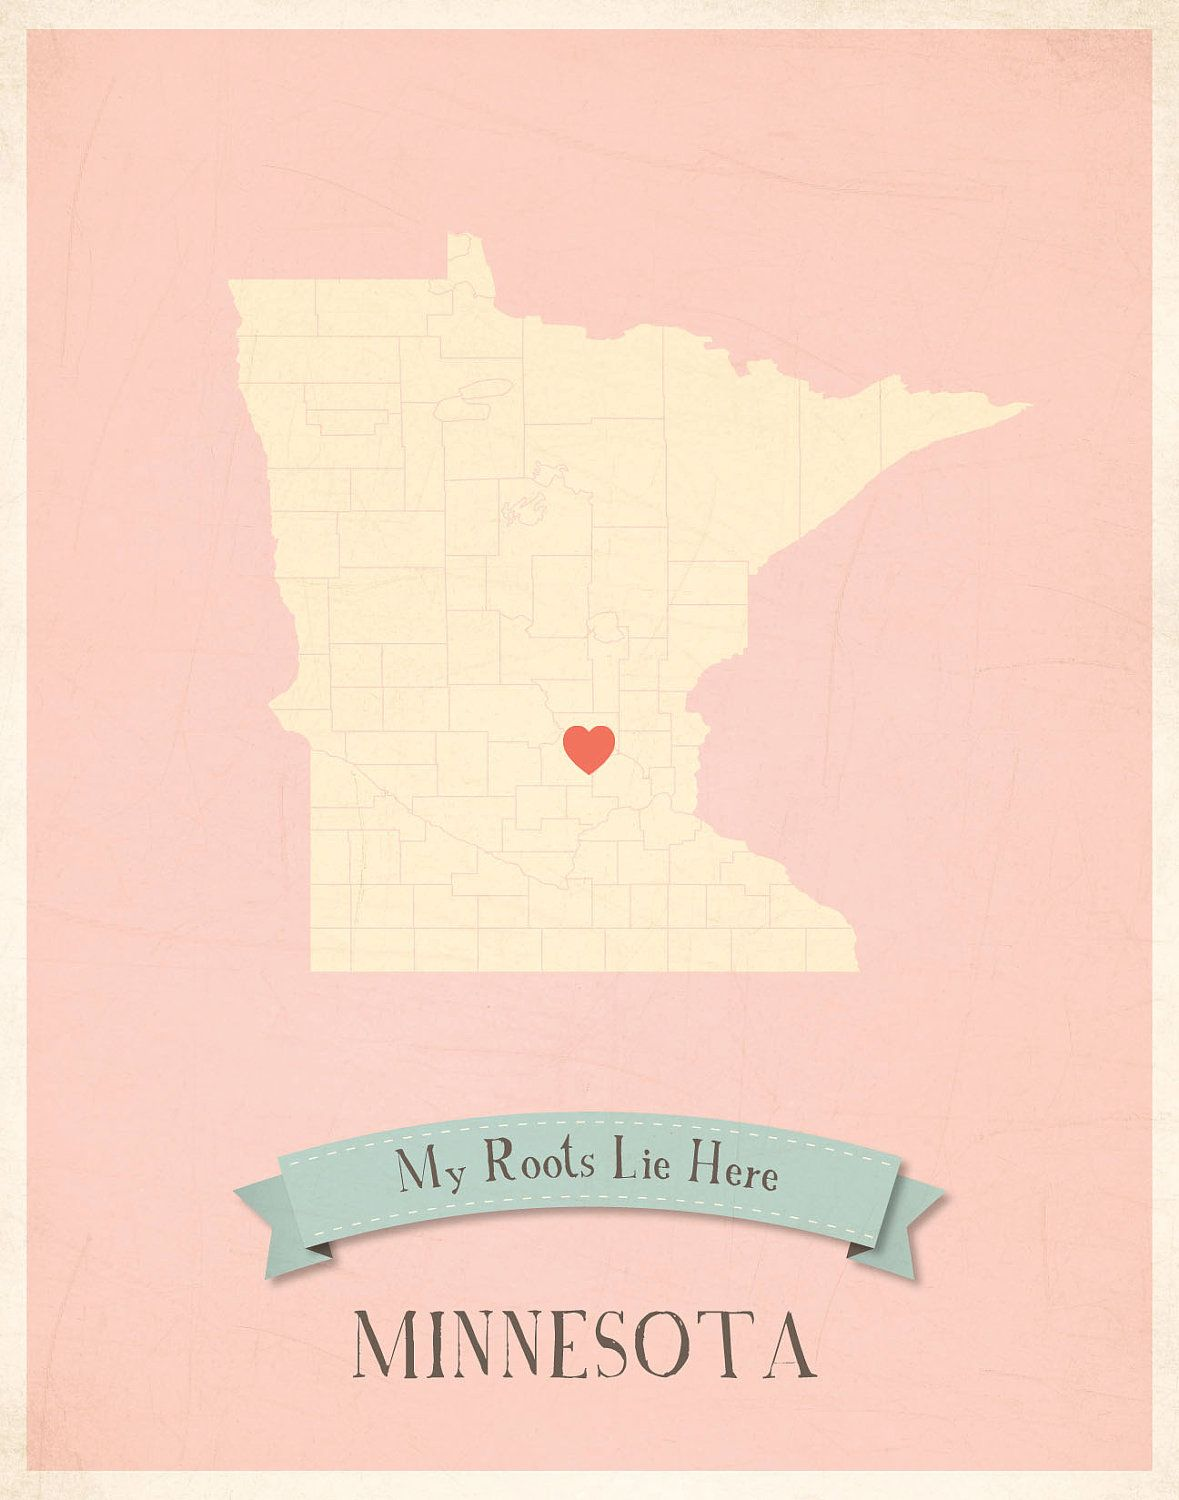 Minnesota Roots Map 11x14 Customized Print... With Cali of course :)